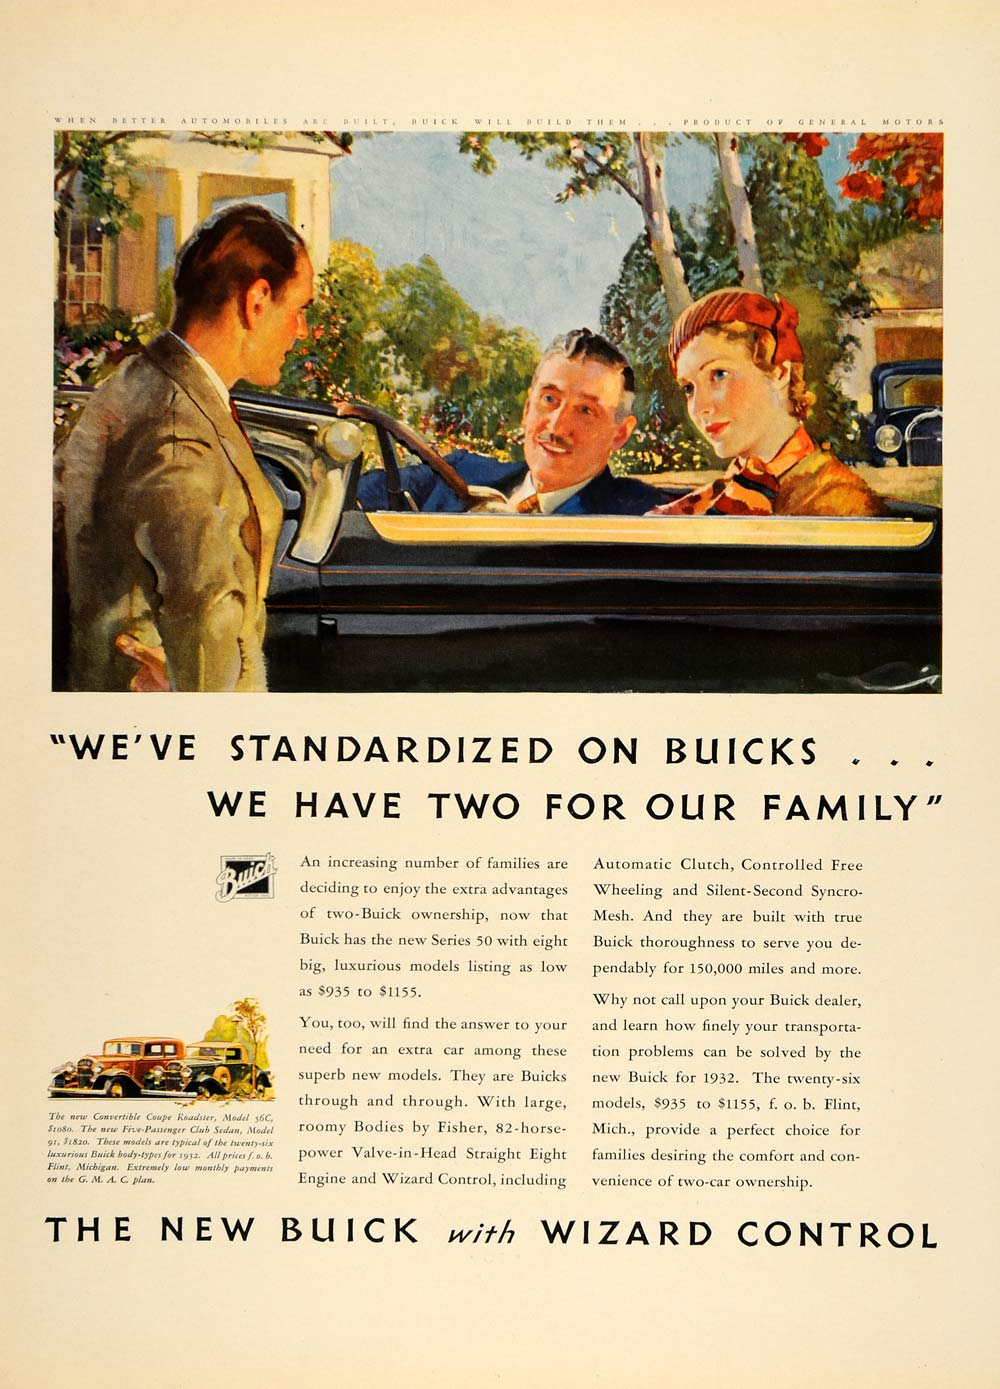 1932 Ad Buick Wizard Control Automobile Fashion Coupe - ORIGINAL ADVERTISING F5A